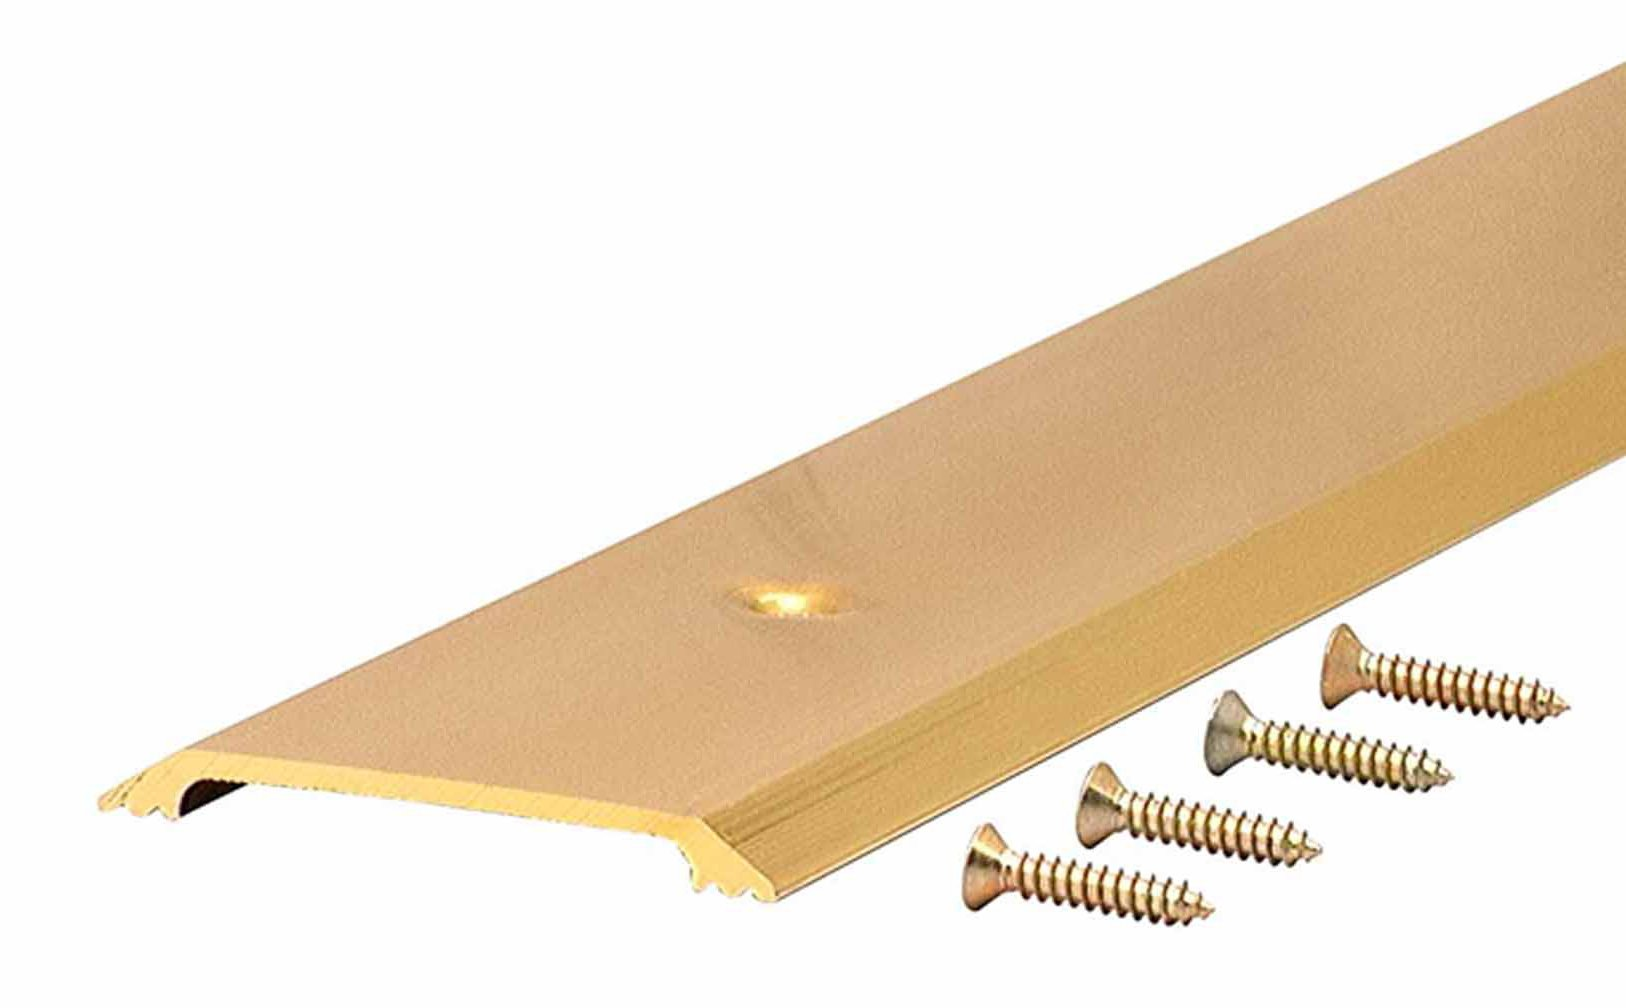 M-D Building Products 9613 Premium Aluminum Flat Top Threshold, 2-1/2-by-36 Inches, Brite Gold